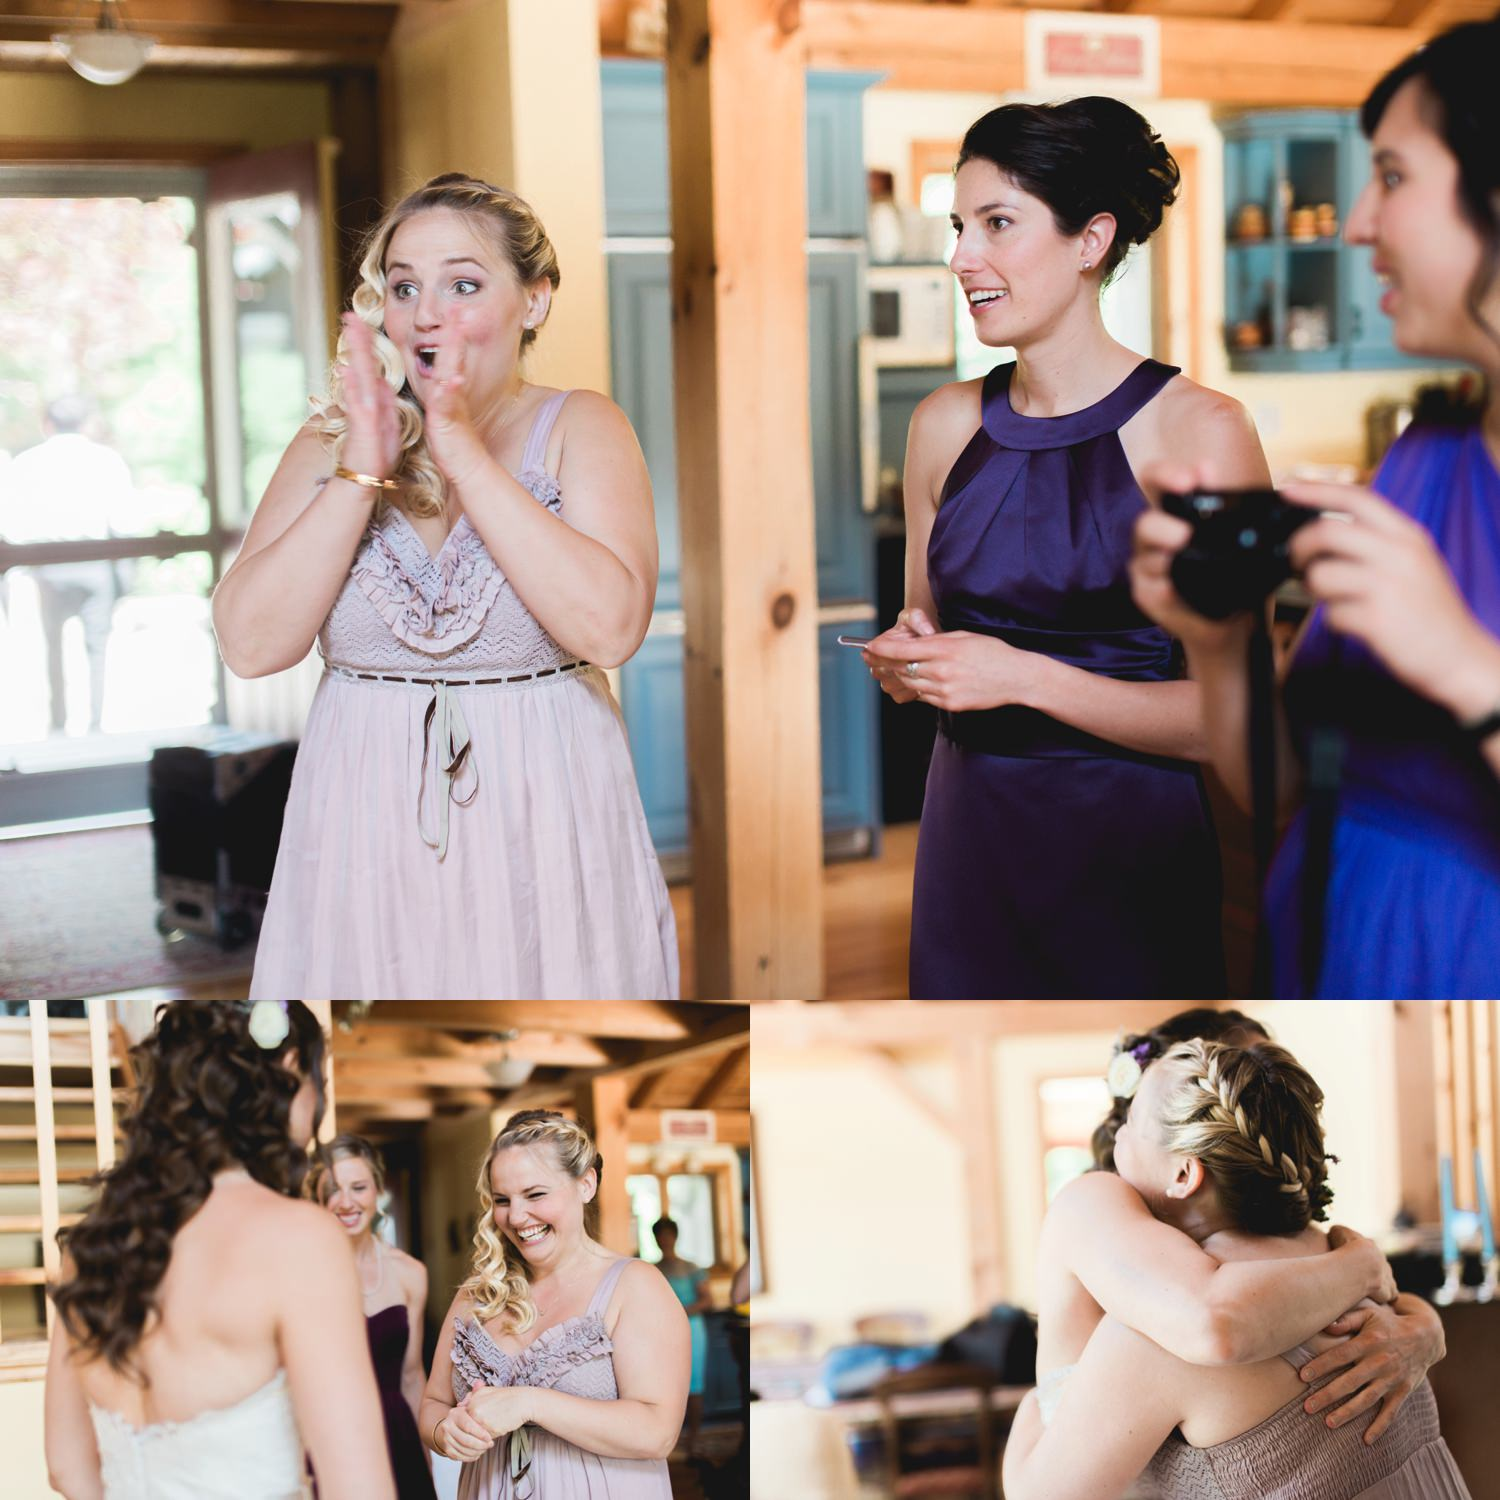 Bridesmaid reacts to seeing the bride